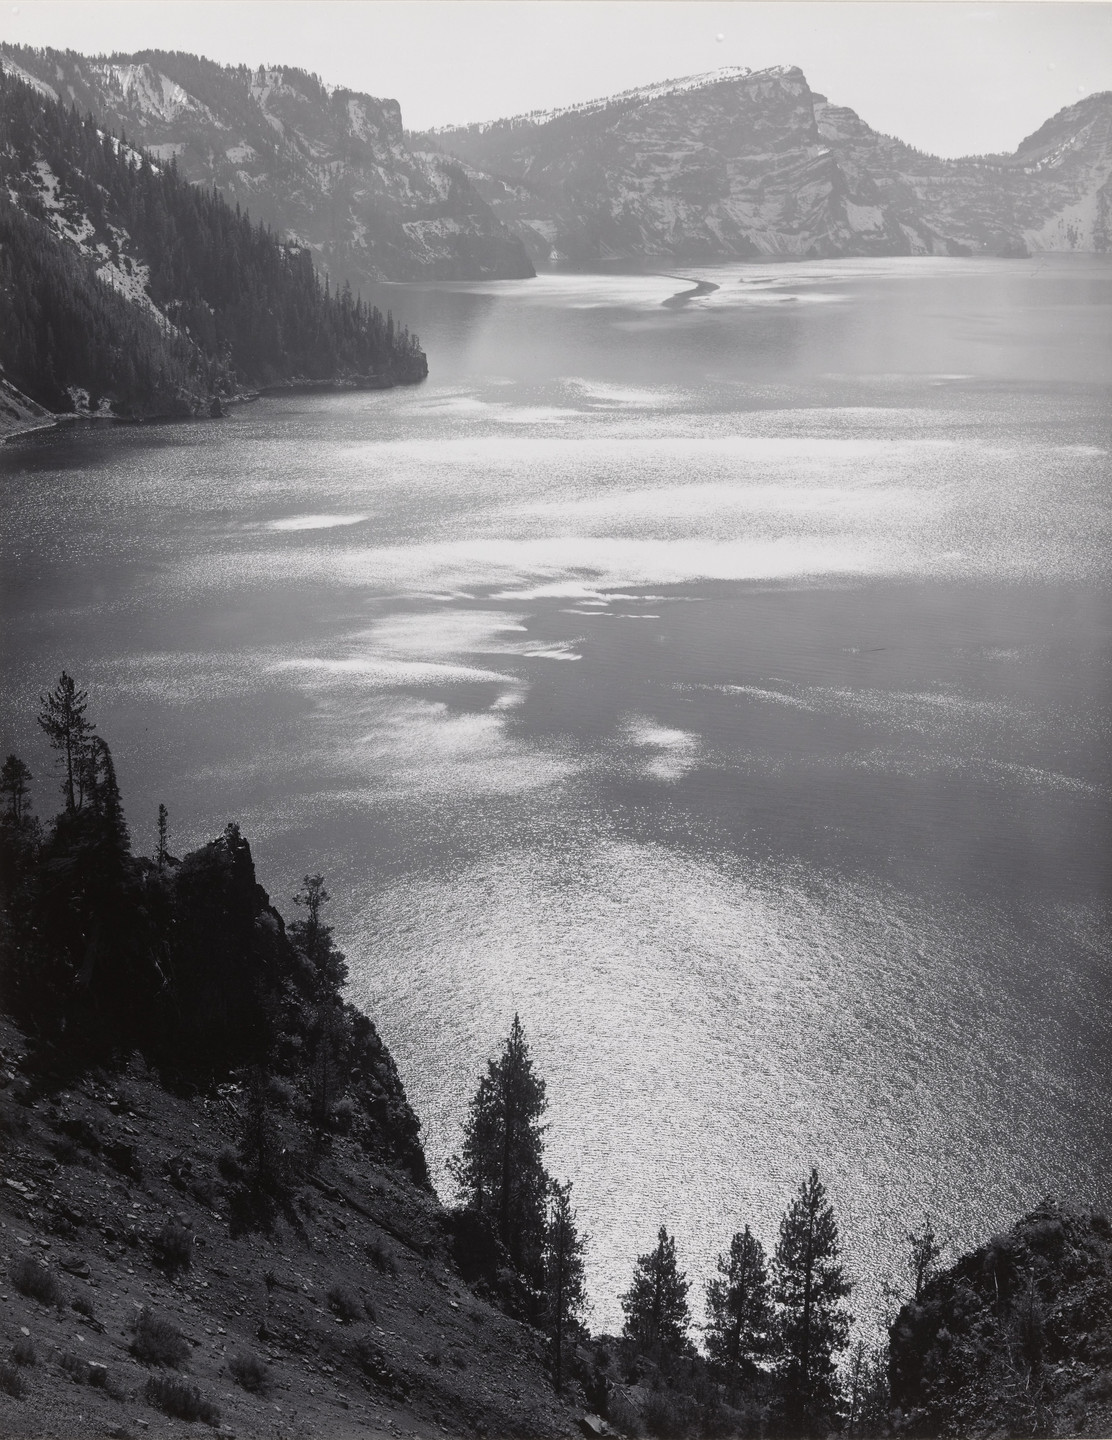 Ansel Adams. Afternoon Sun, Crater Lake National Park, Oregon. 1943